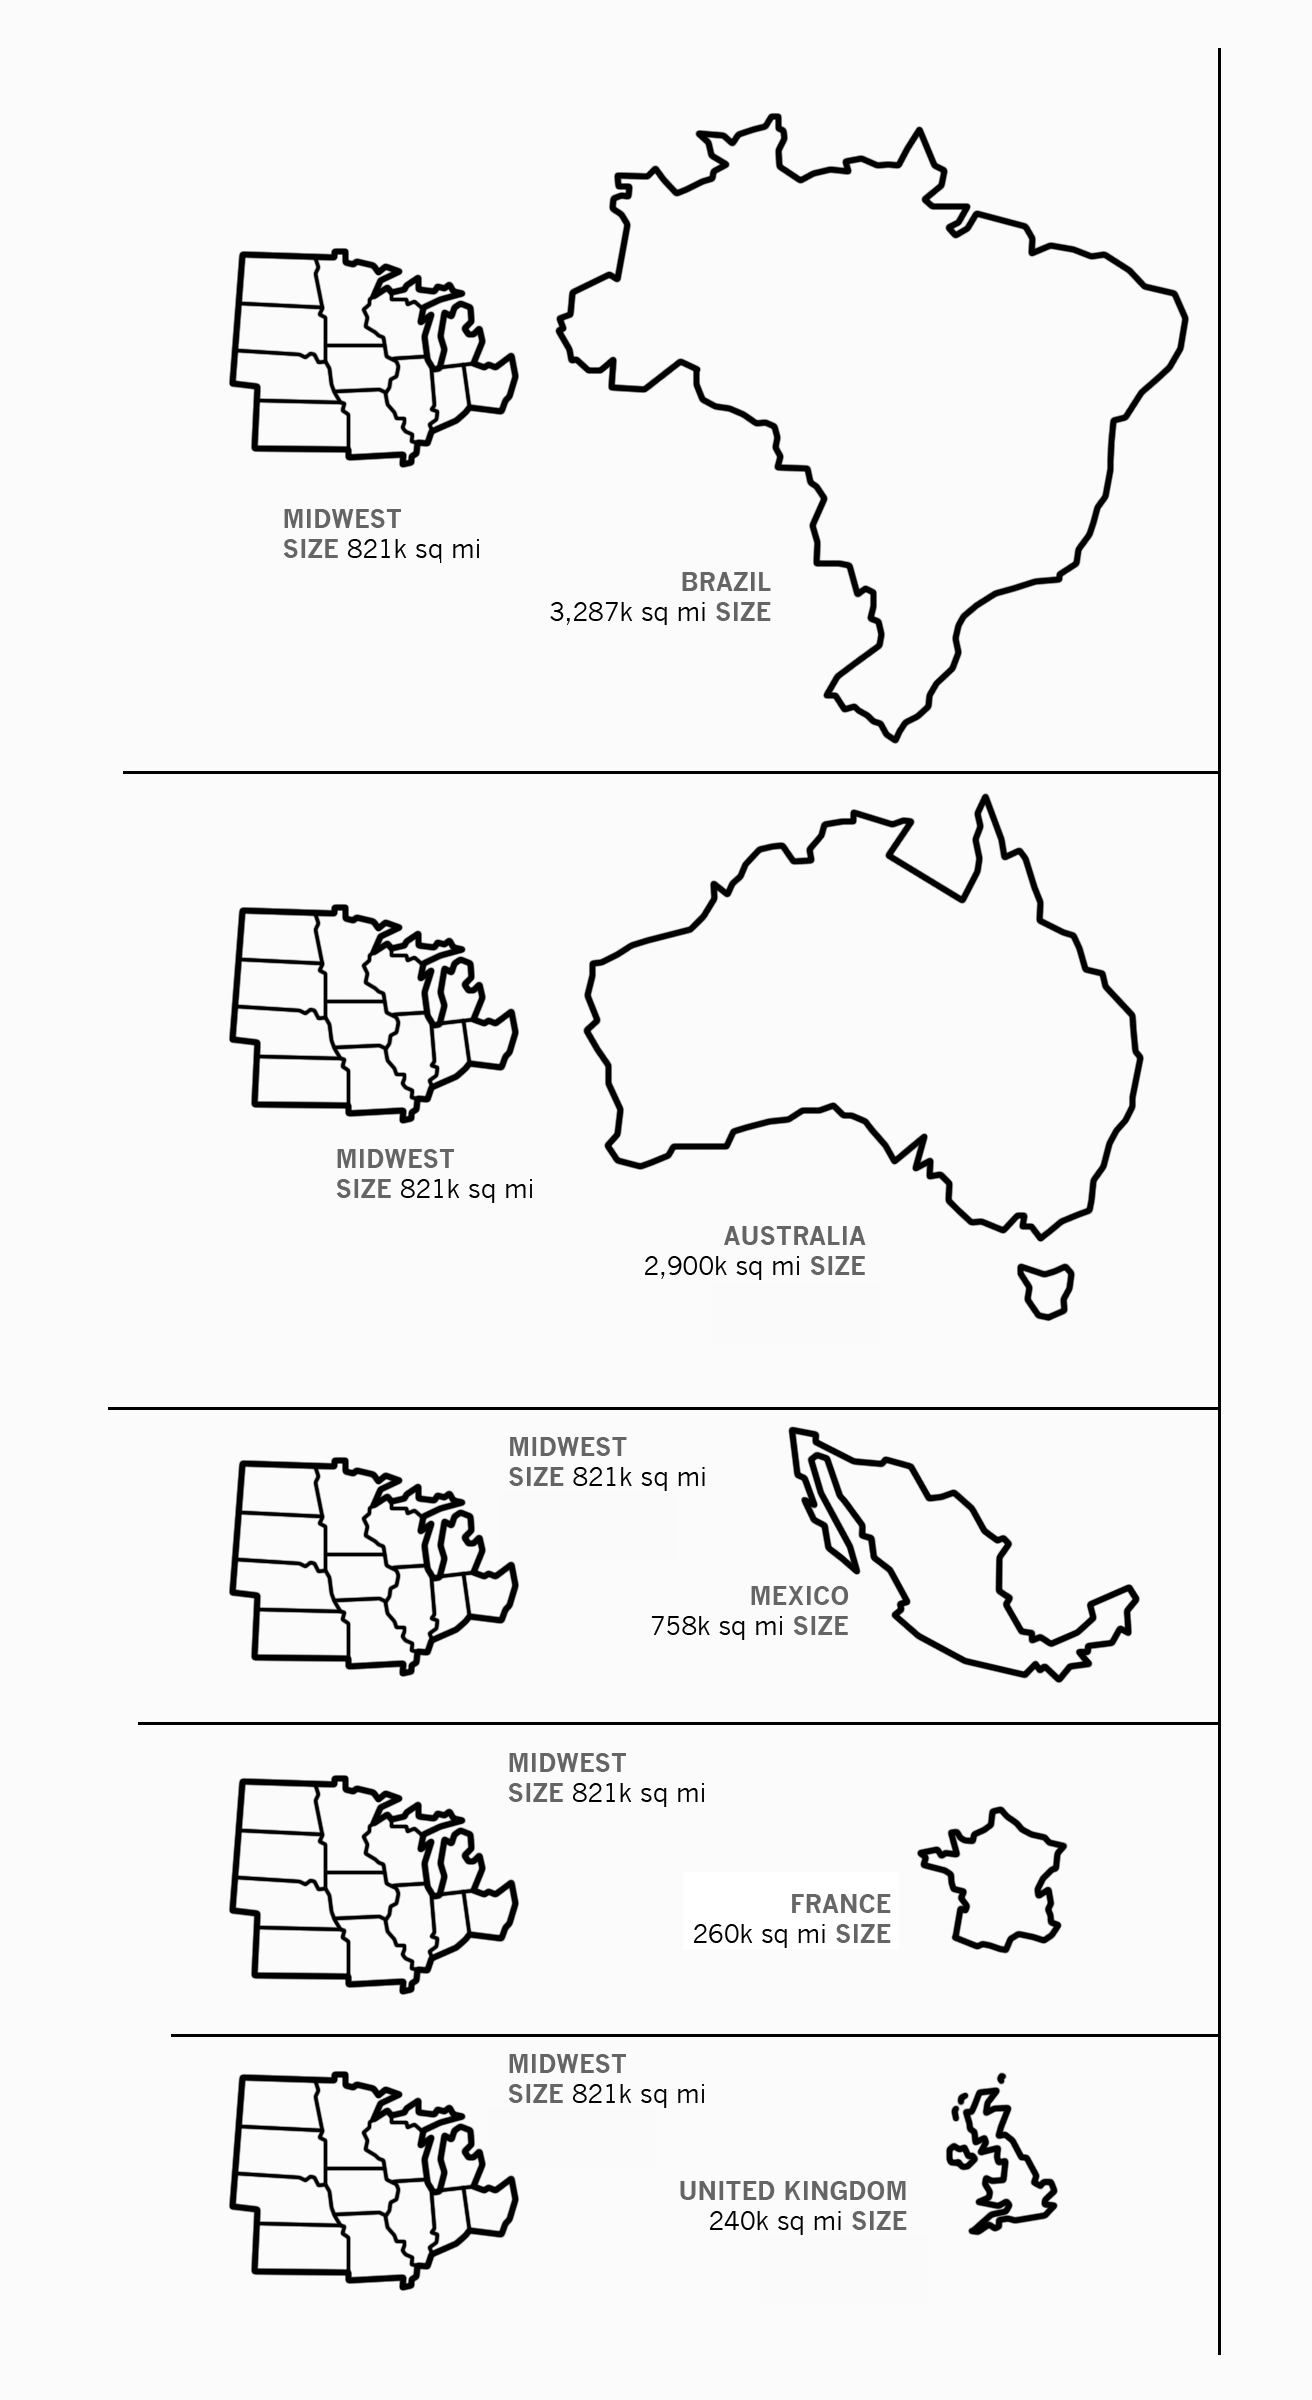 41 Maps And Charts That Explain The Midwest Learn Something New Everyday America Map First Dates